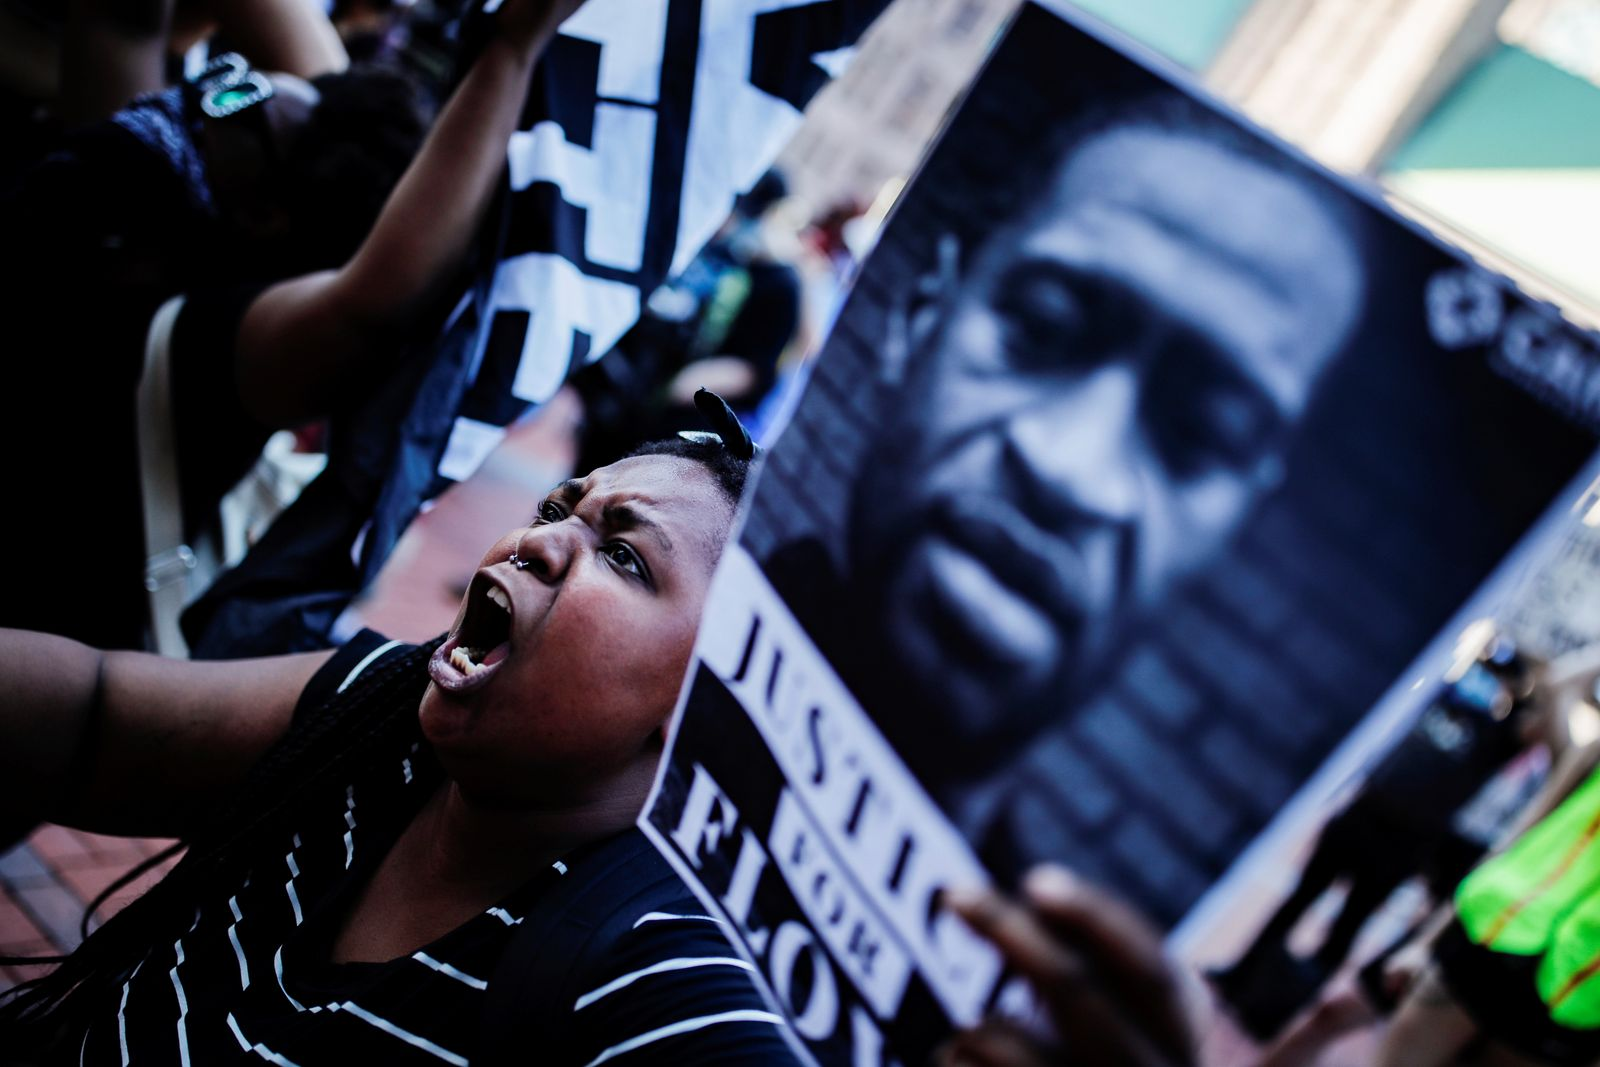 A protester reacts while gathering with others outside the city hall in Minneapolis